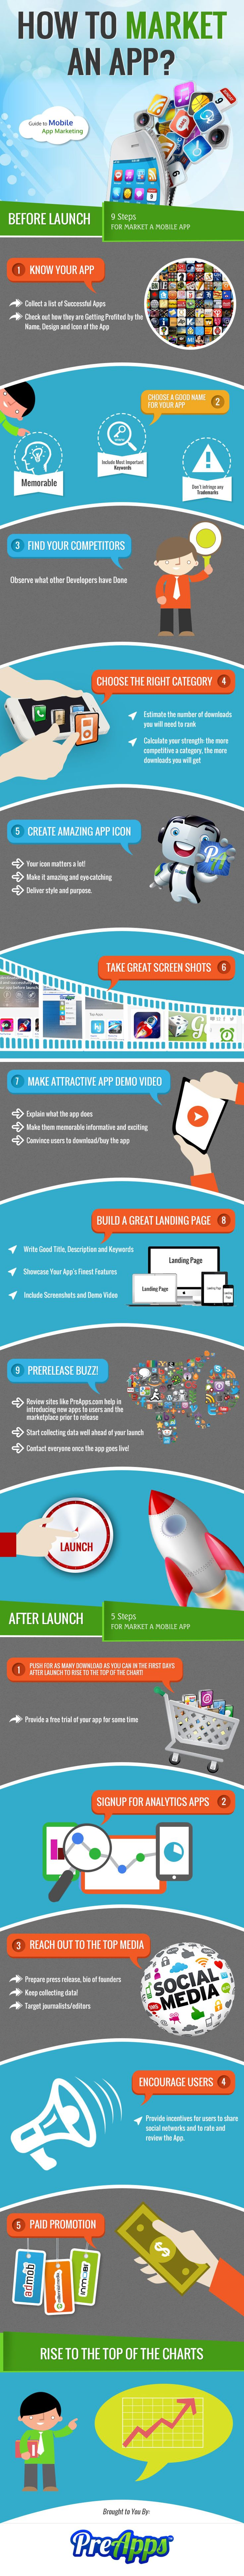 Find This Pin And More On Seo How To Promote Your Mobile App